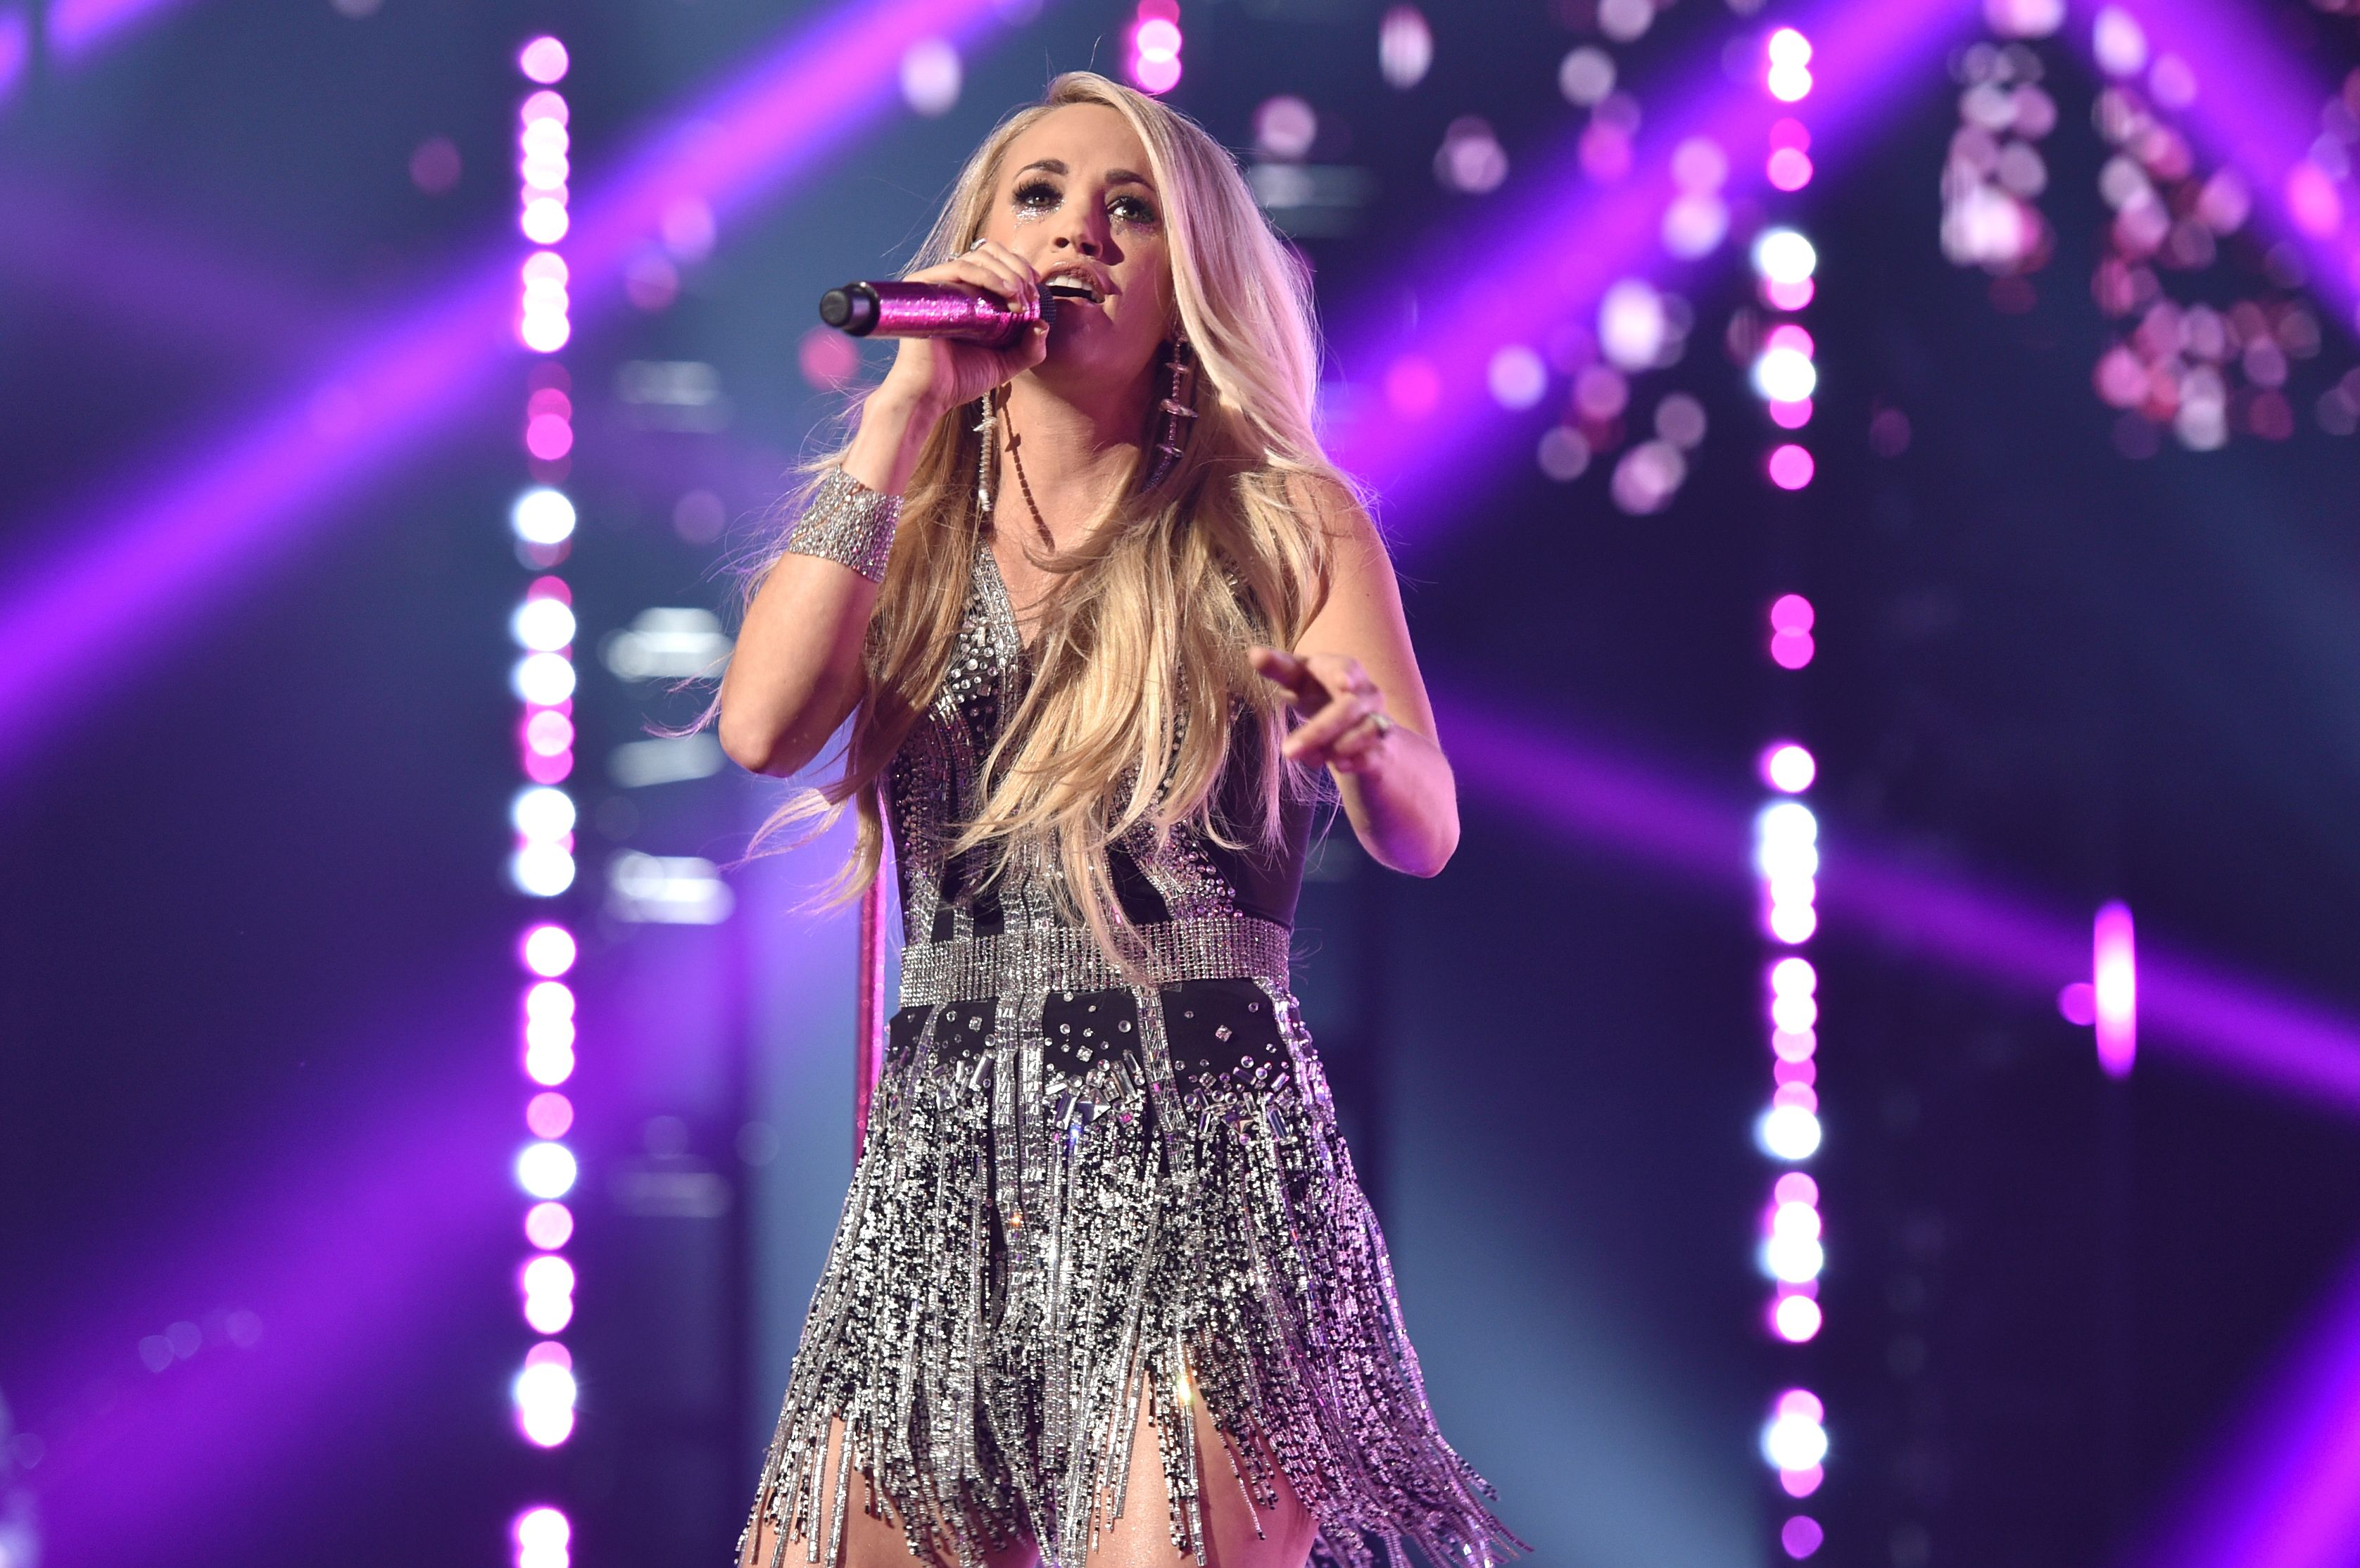 Carrie Underwood Reveals Details of Terrible Accident for First Time